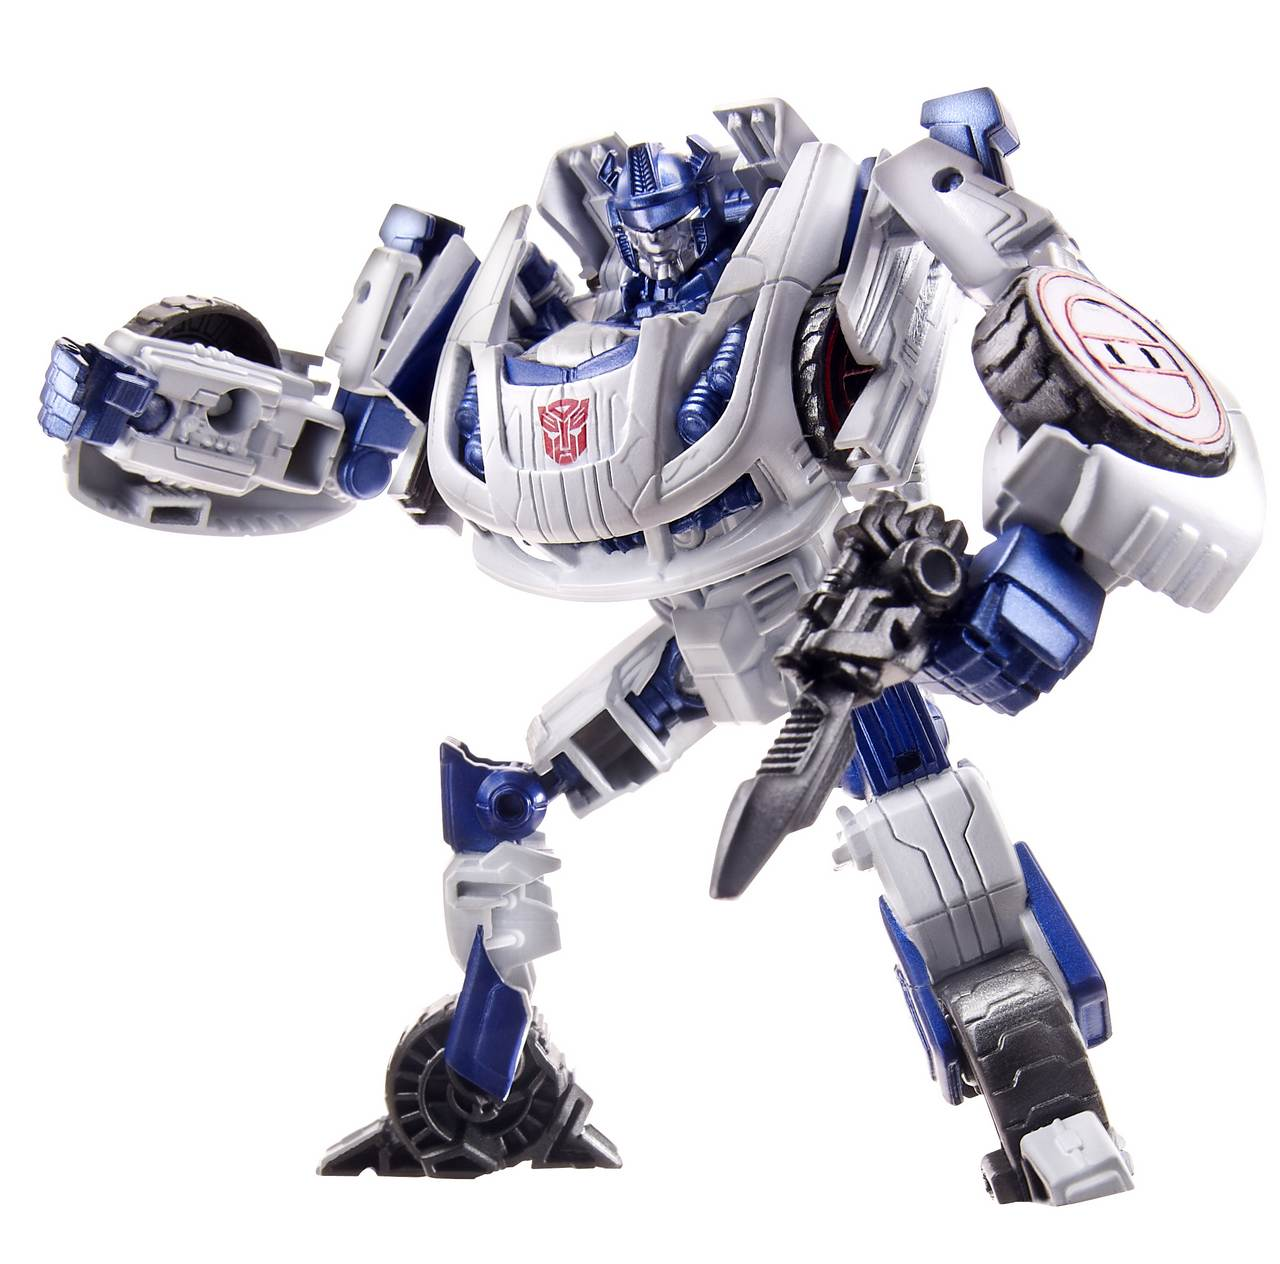 Japanese Transformers Toys : New takara tomy solicitations fall of cybertron toys